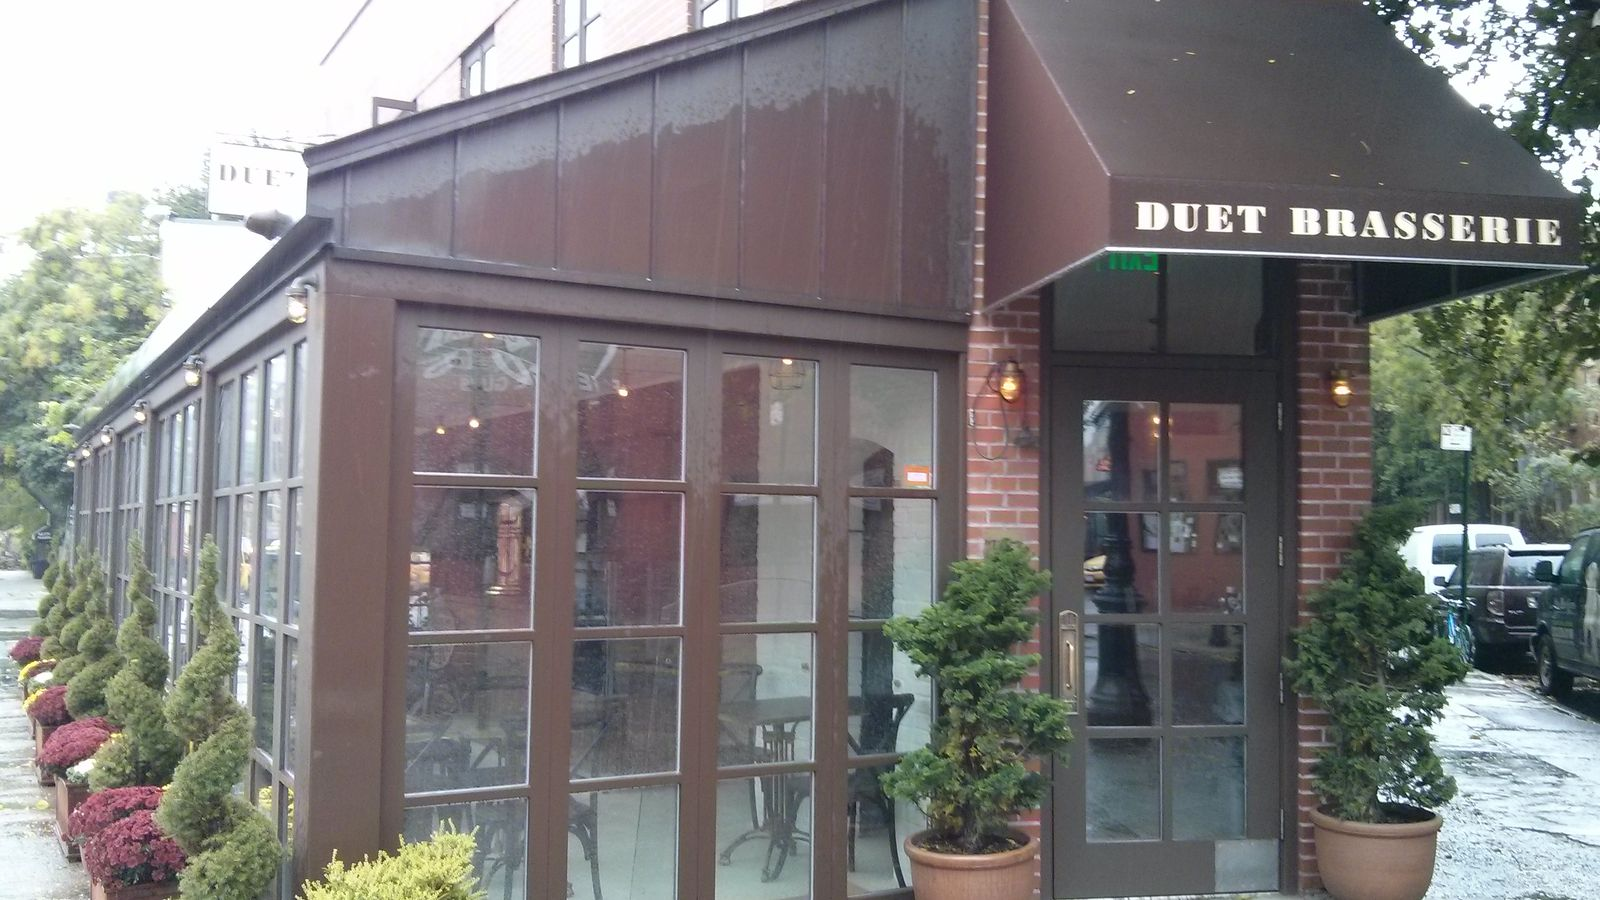 Brooklyn 39 s duet bakery spawns a brasserie in the old - Vinotecas madrid centro ...